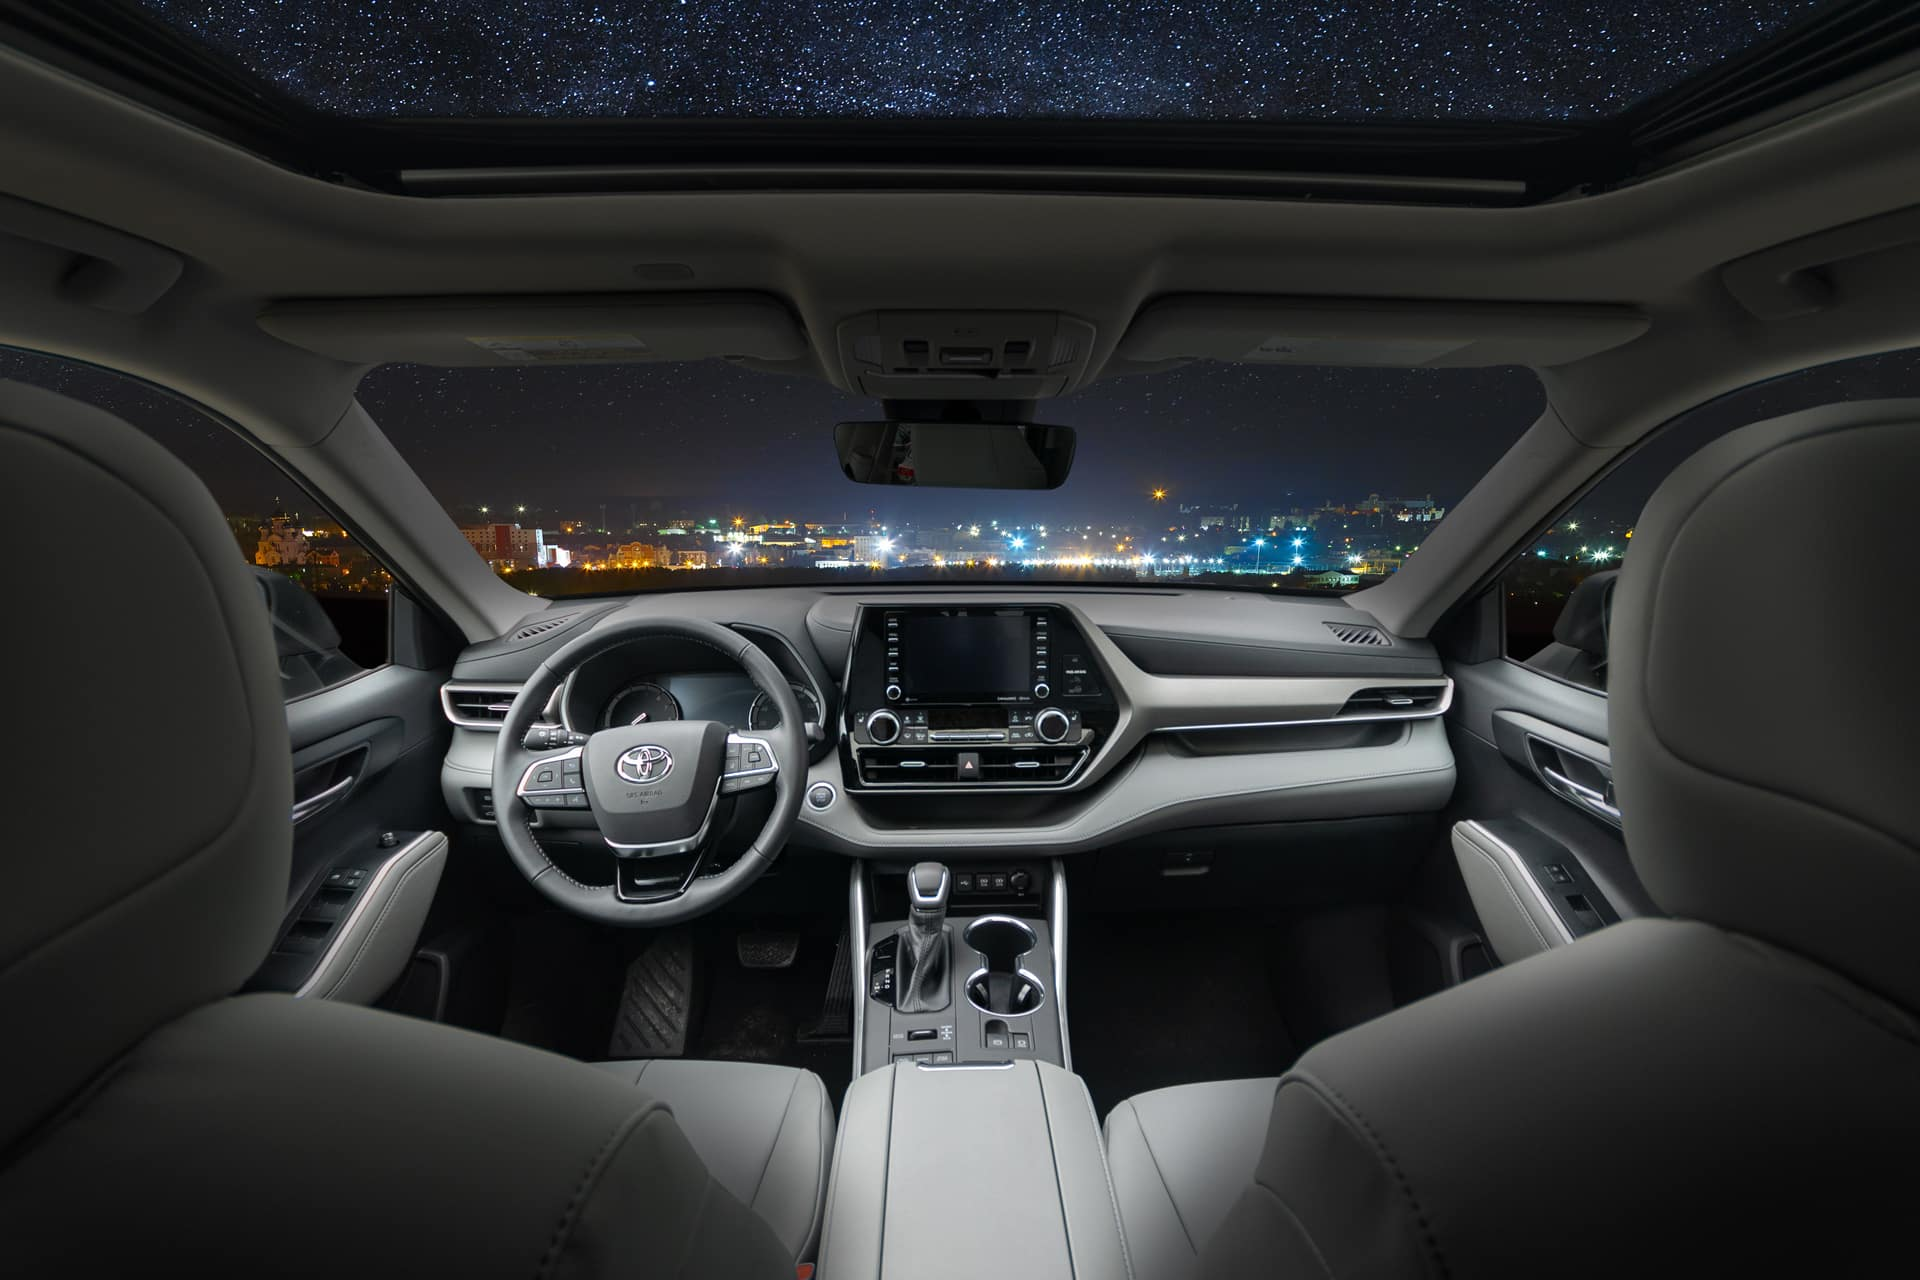 2020 Toyota Highlander interior photograph outside of Holman Toyota dealership